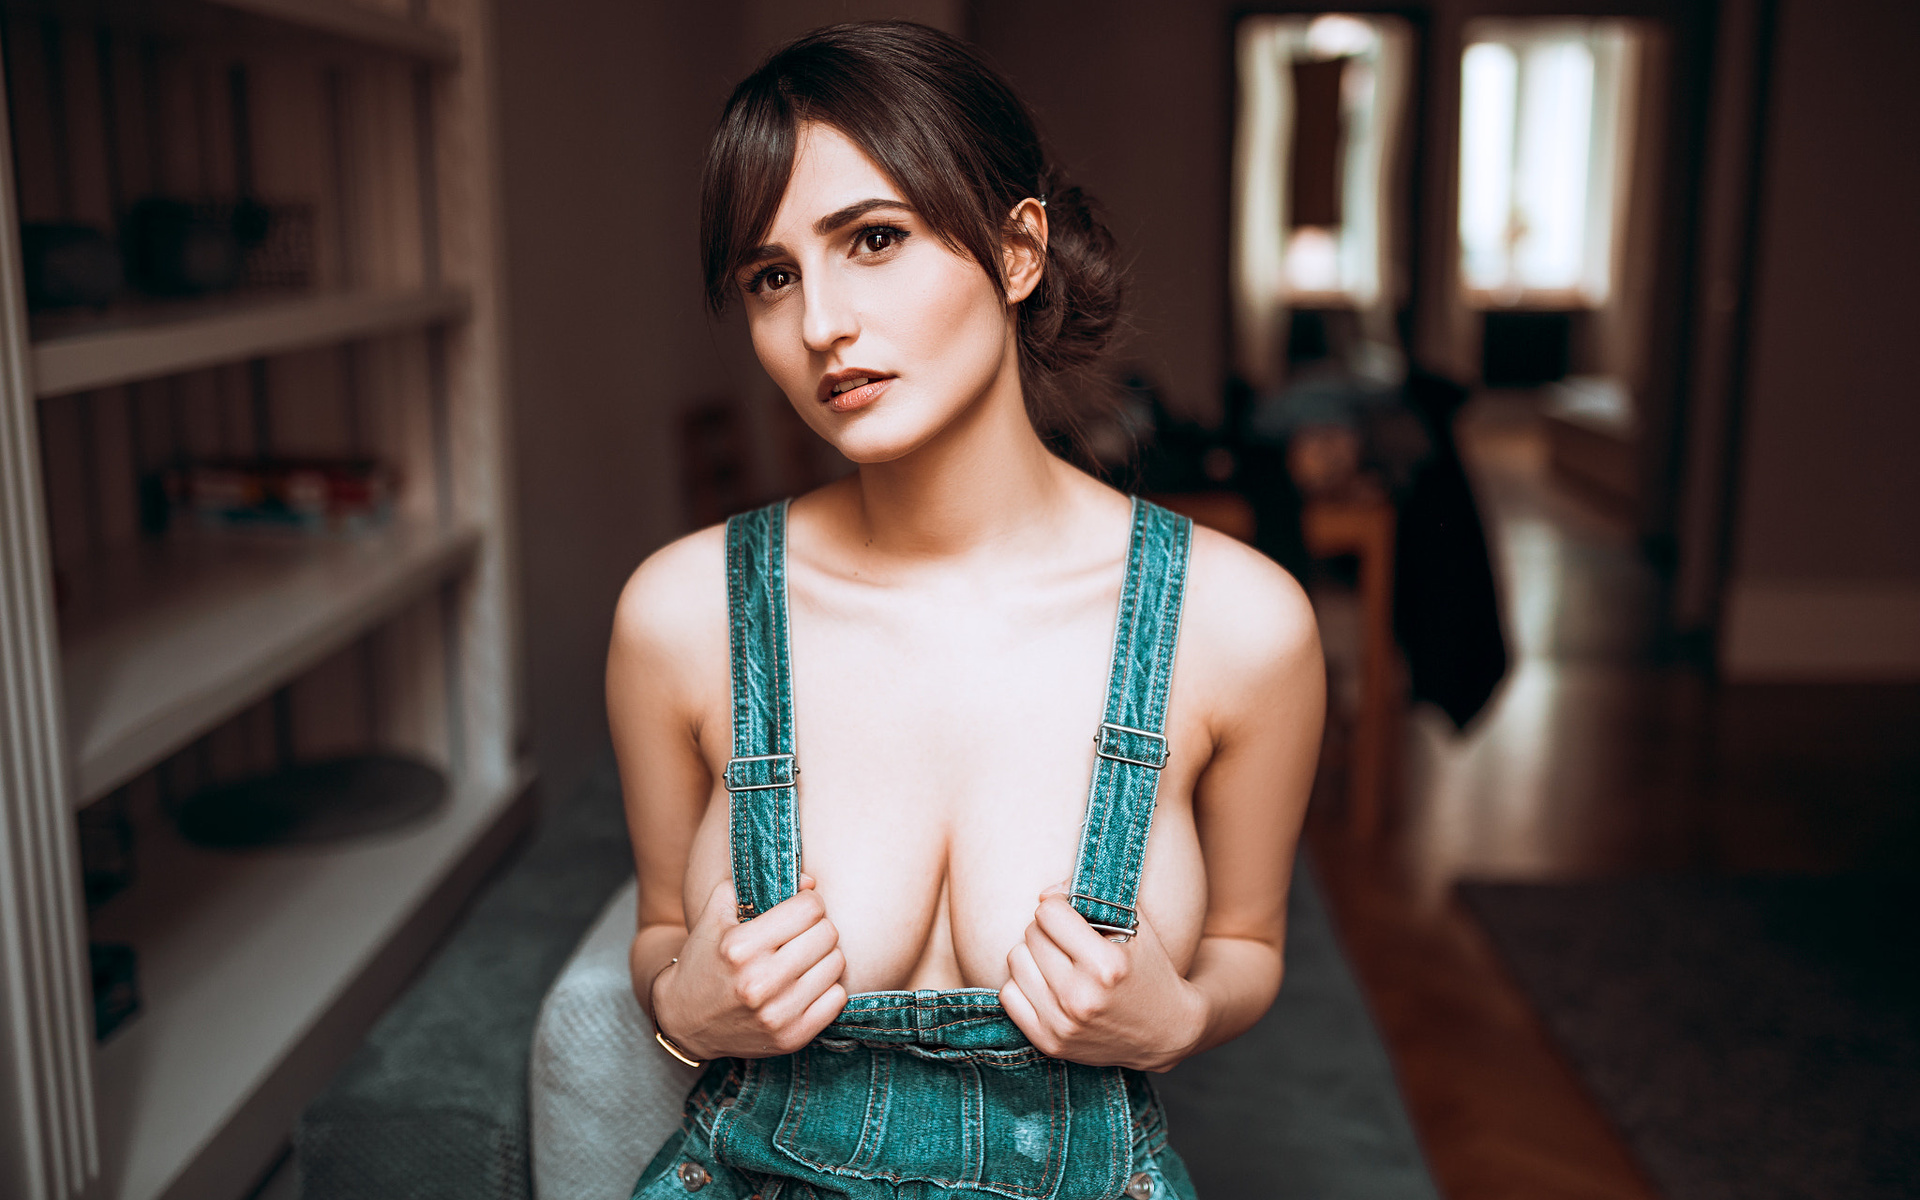 Naked young girls in bibbed overalls domination porn pics